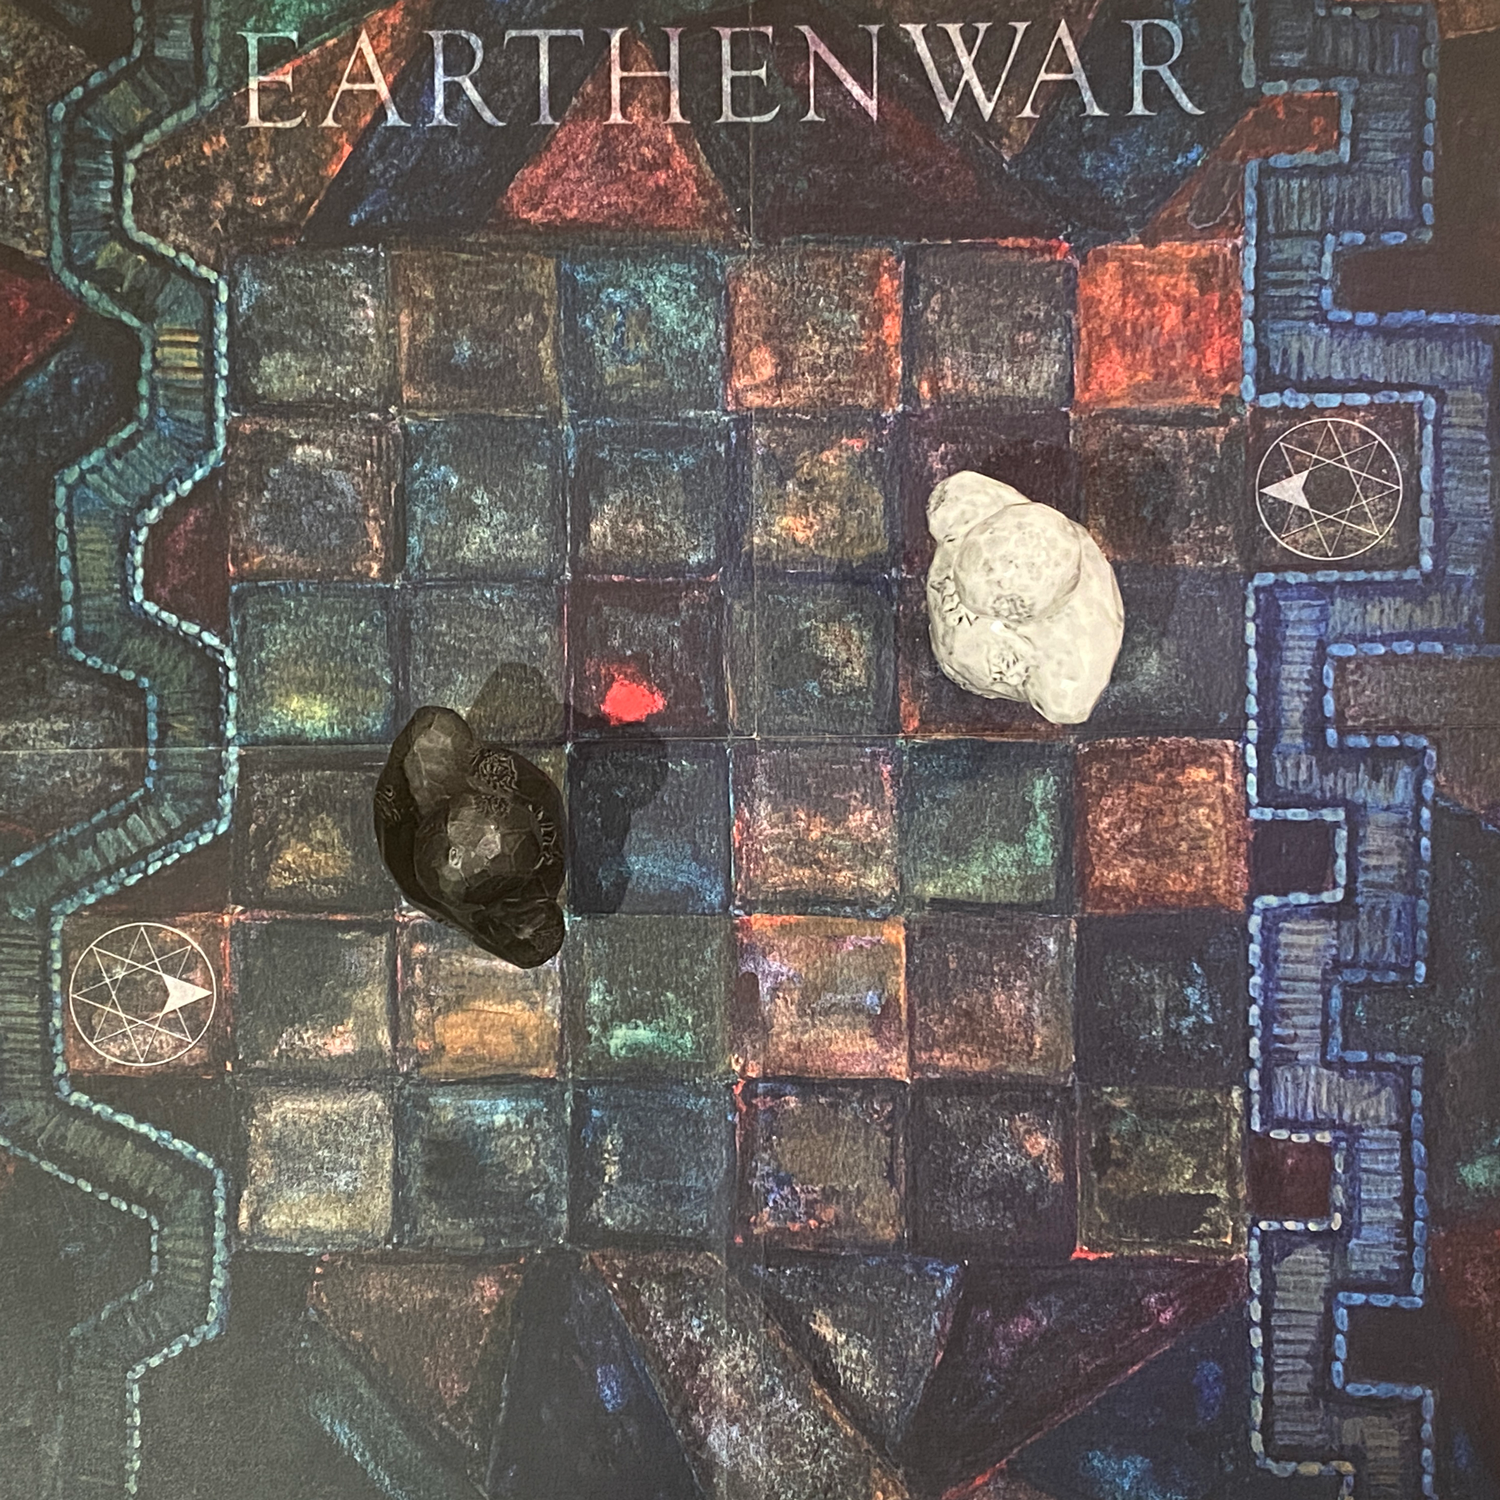 Overhead View of Earthenwar Board GameImage © Board Game Review UK